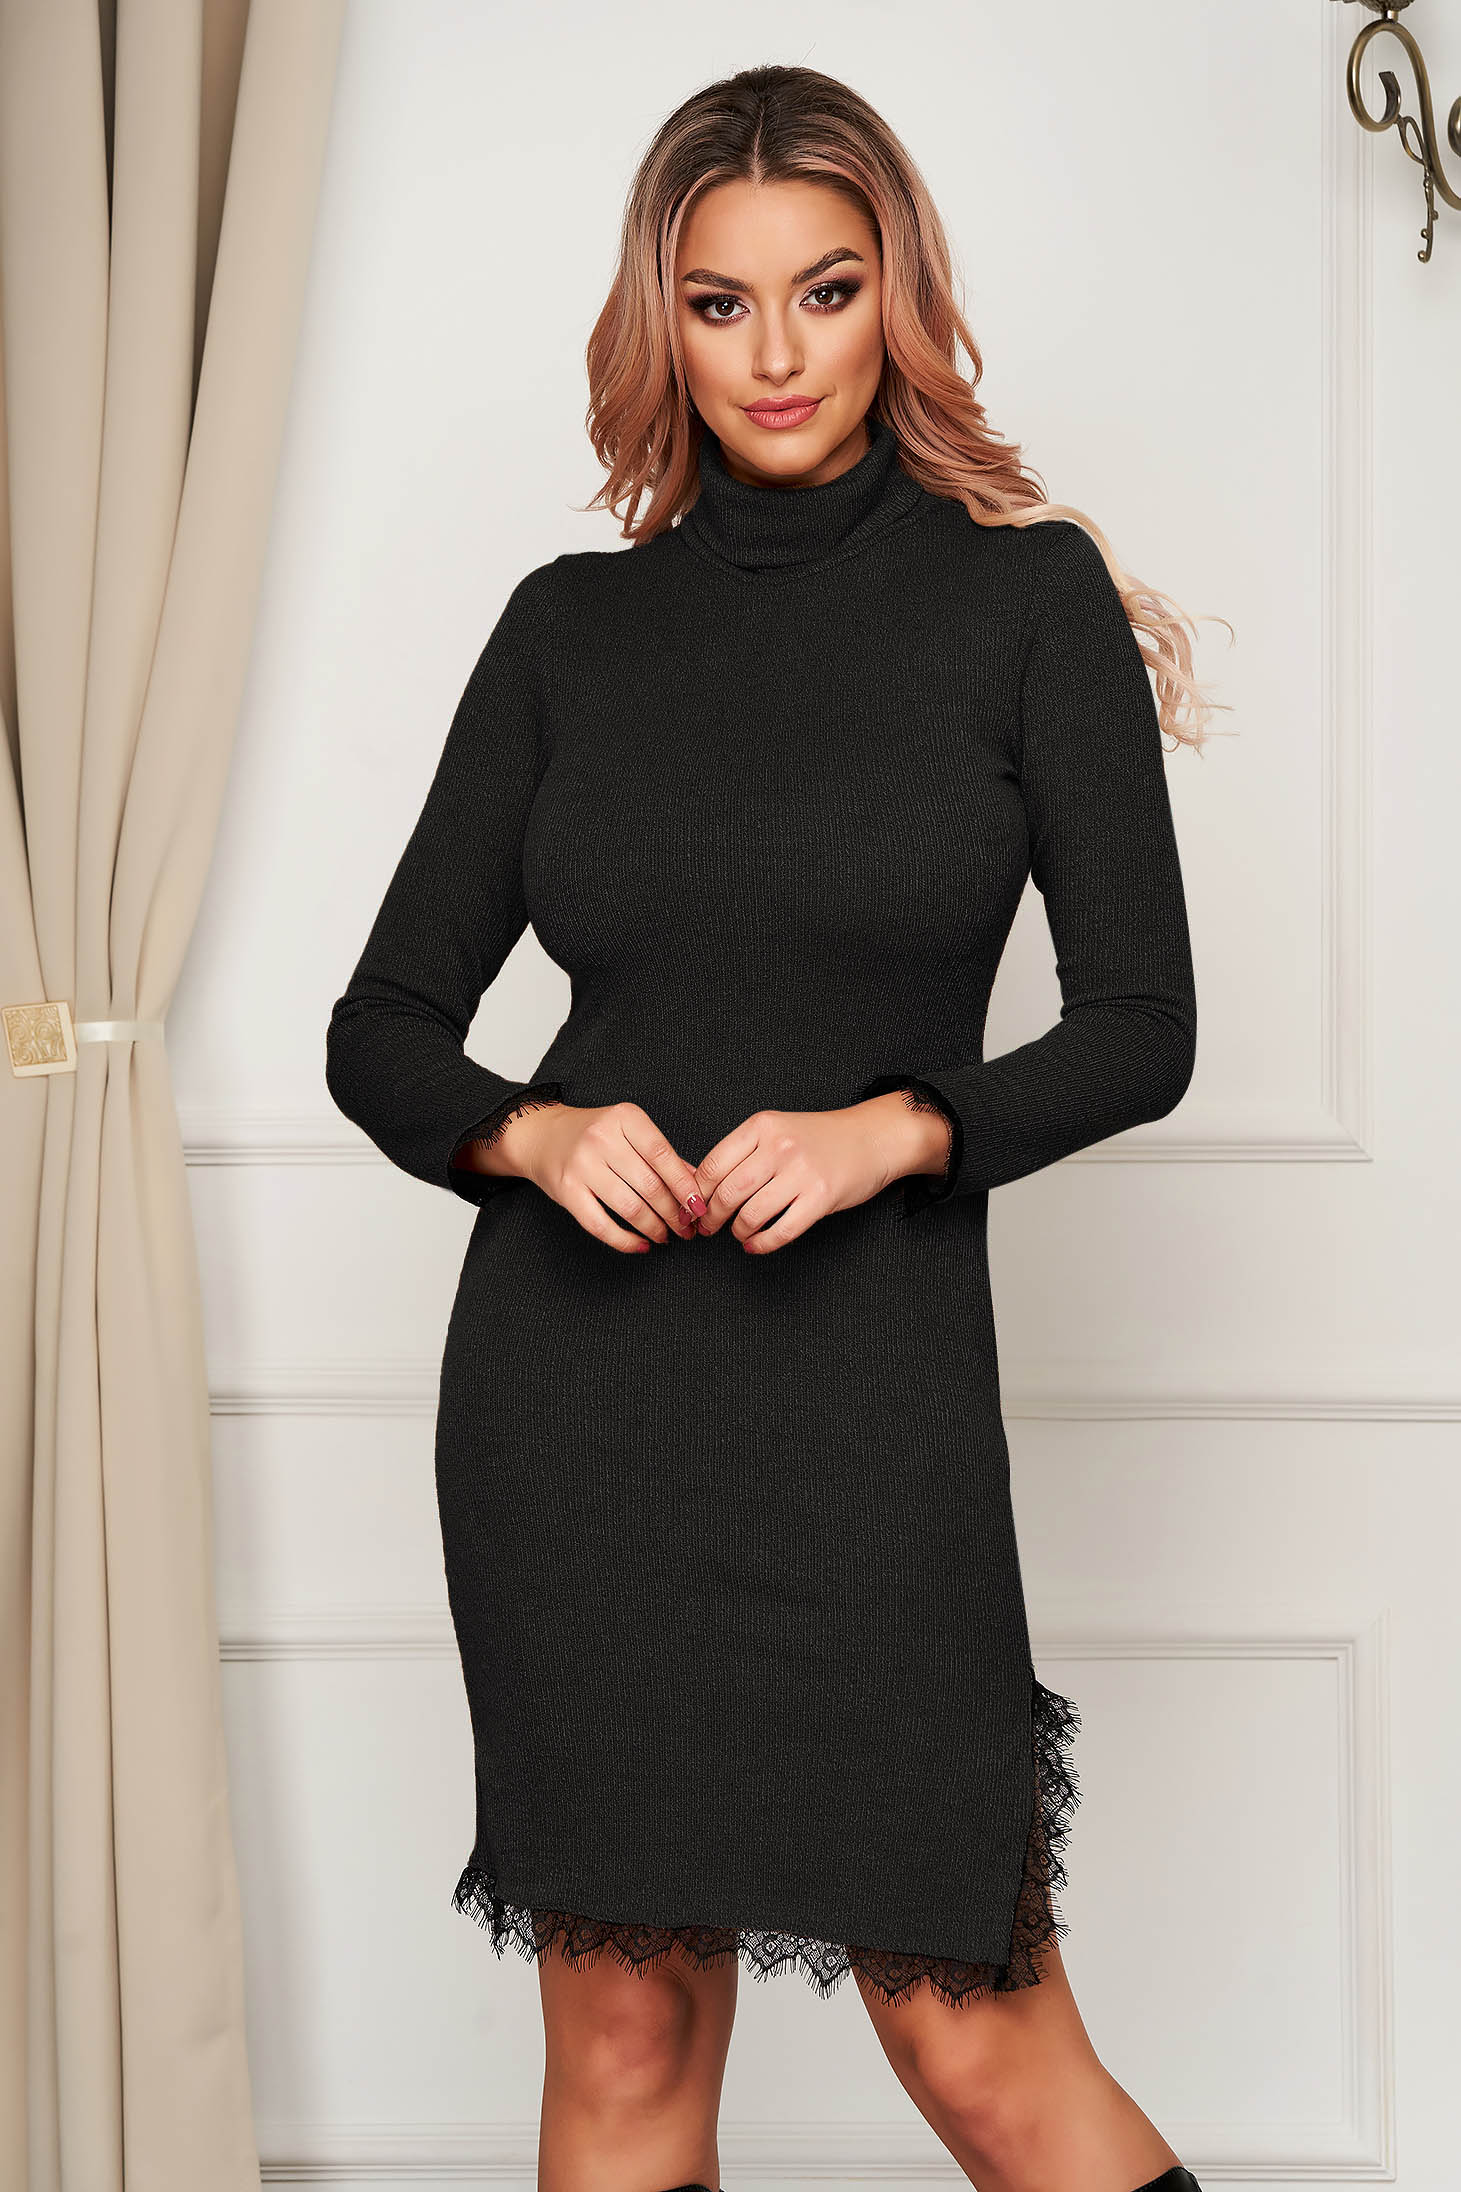 Black dress midi daily knitted with turtle neck with lace details